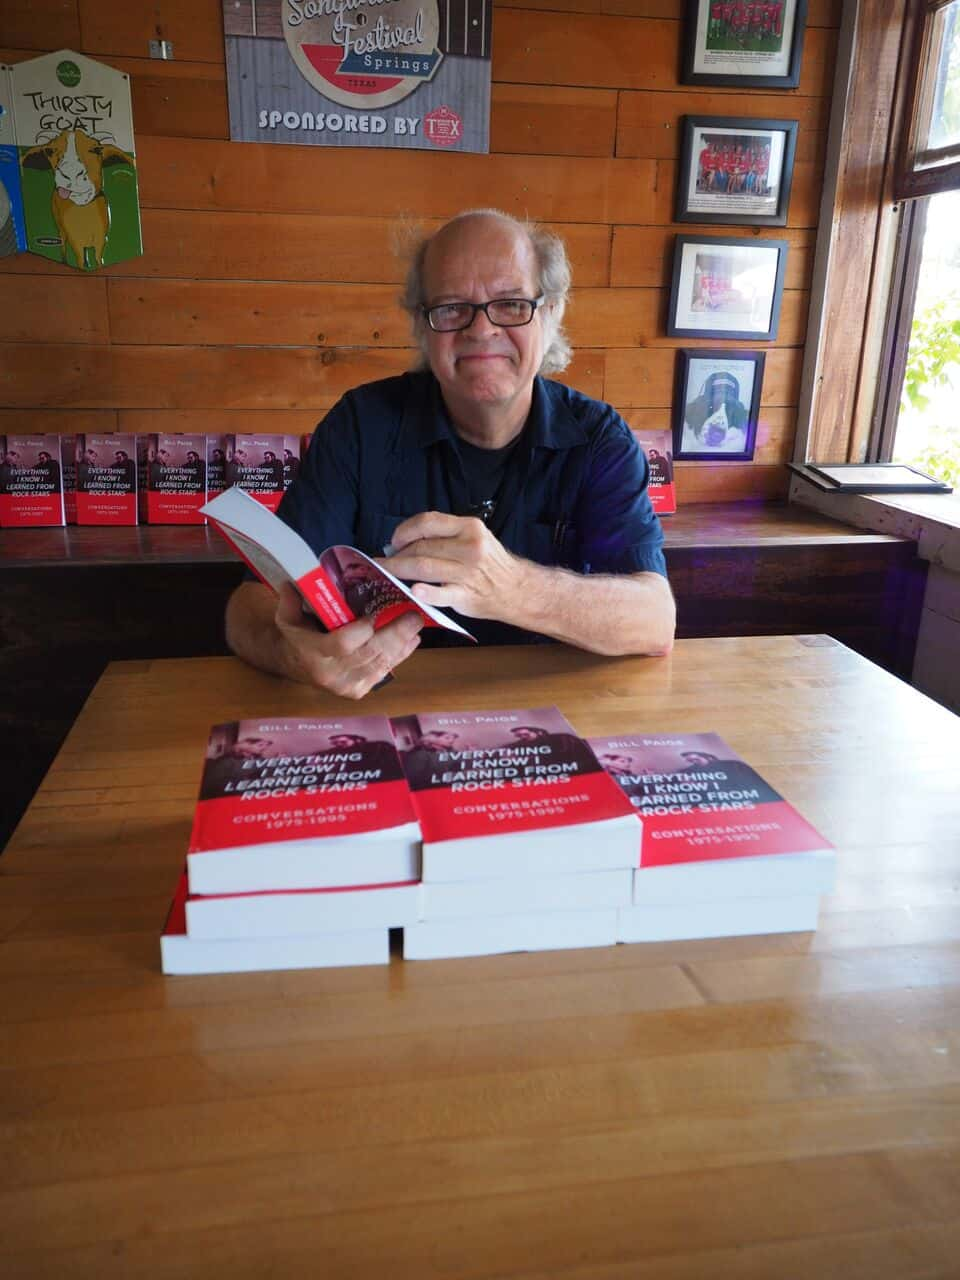 """Everything I Know I Learned From Rock Stars"" Book Signing in Texas!"